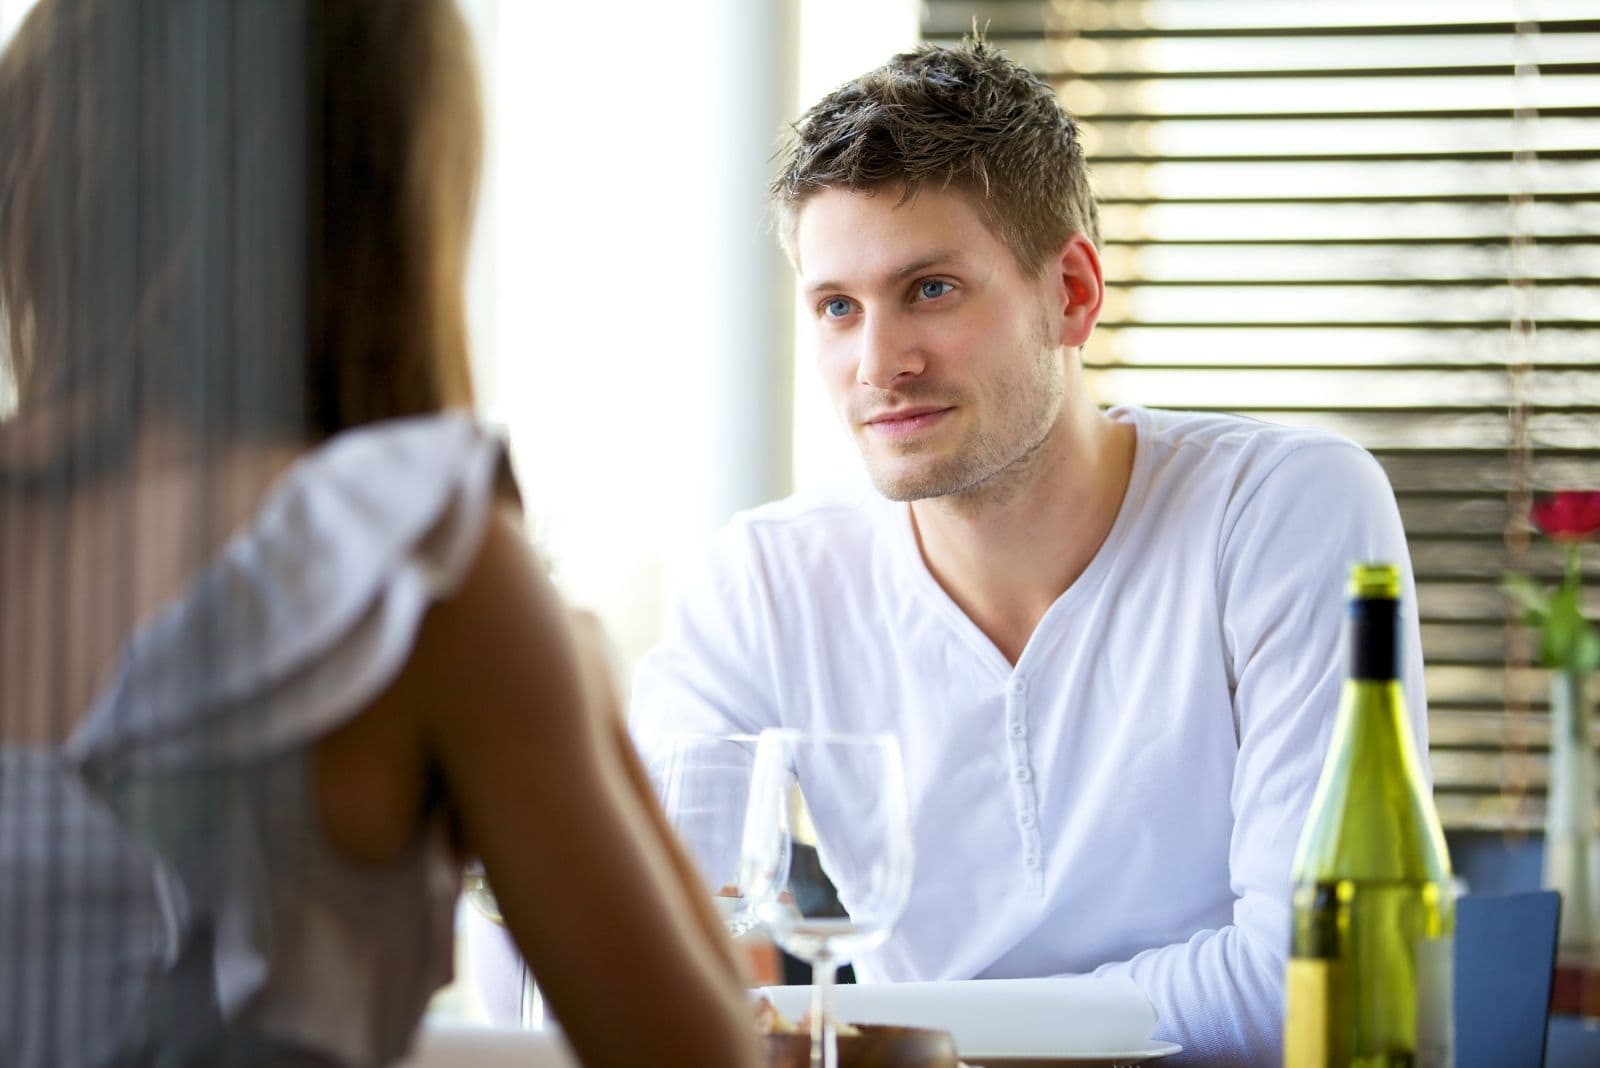 couple seriously conversing in the restaurant during a date